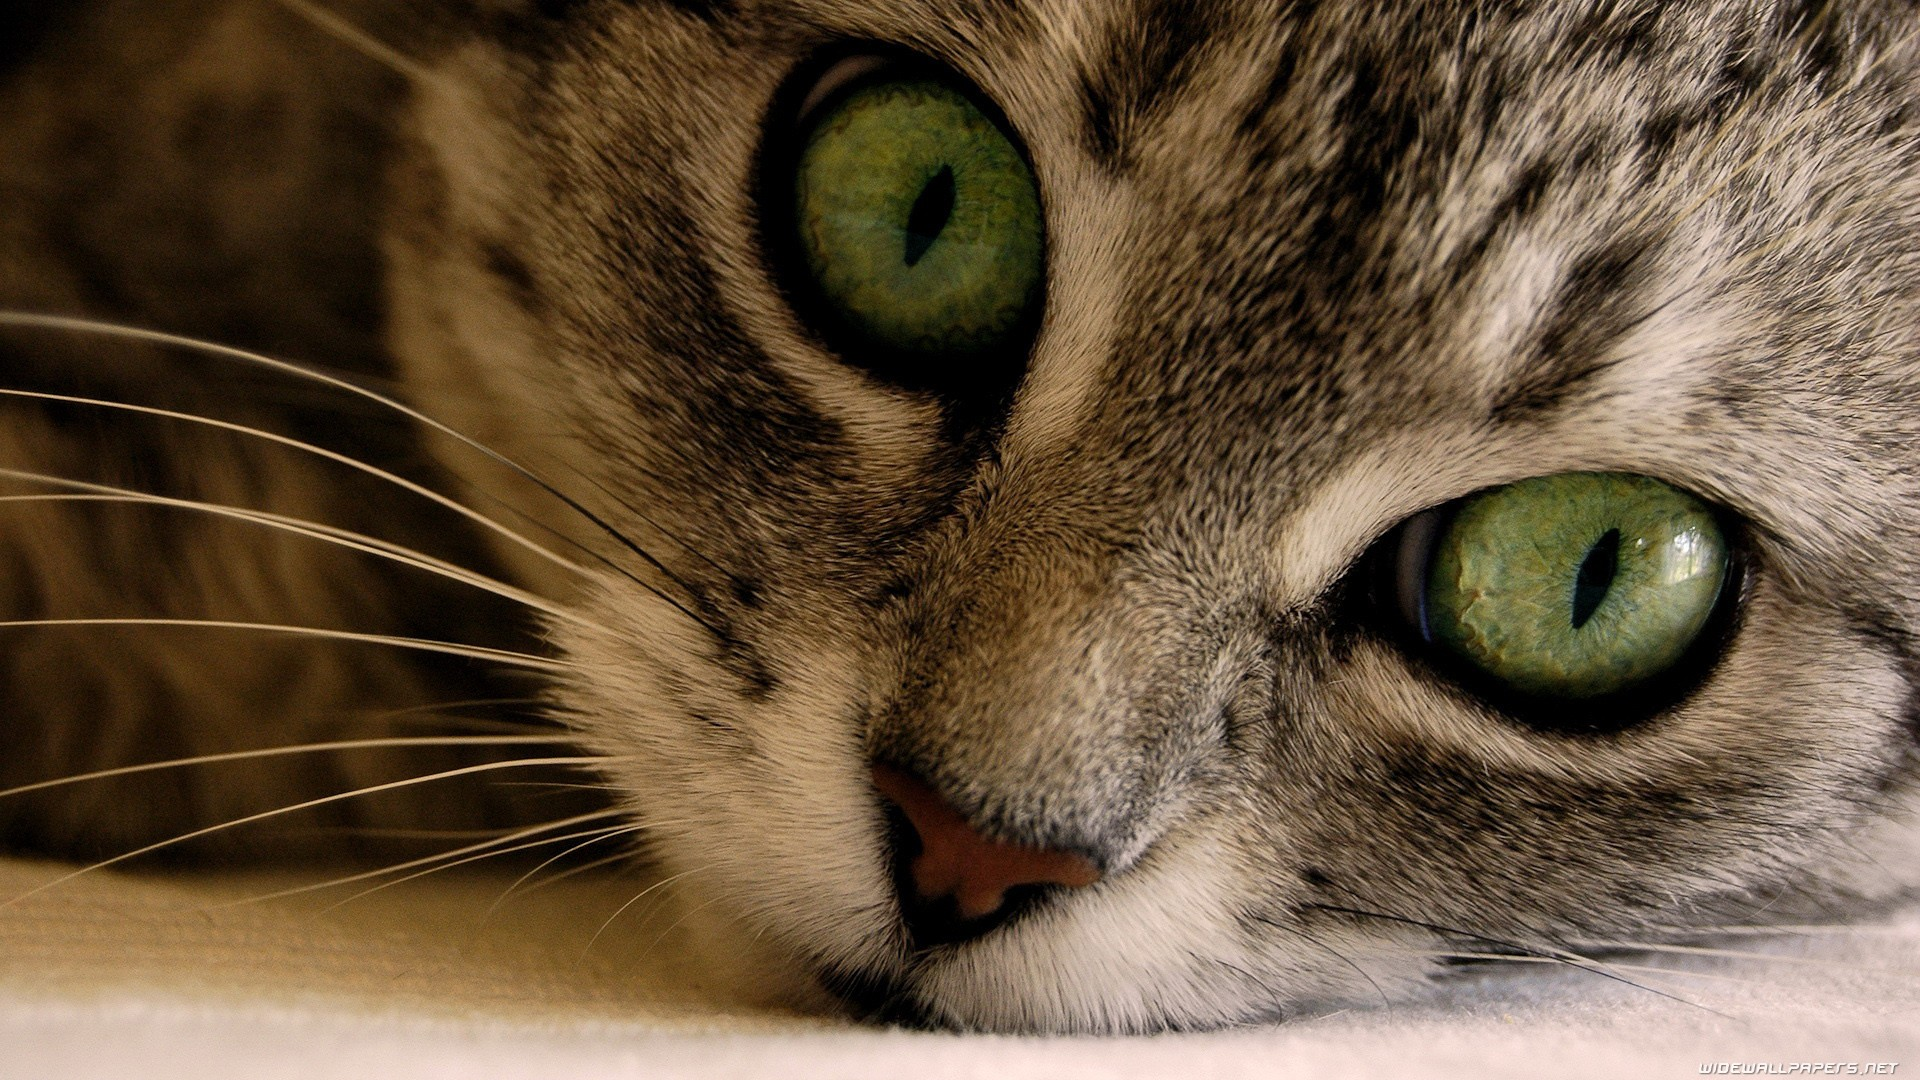 Eyes Cats Wallpaper 1920x1080 Eyes Cats Animals Green Eyes 1920x1080